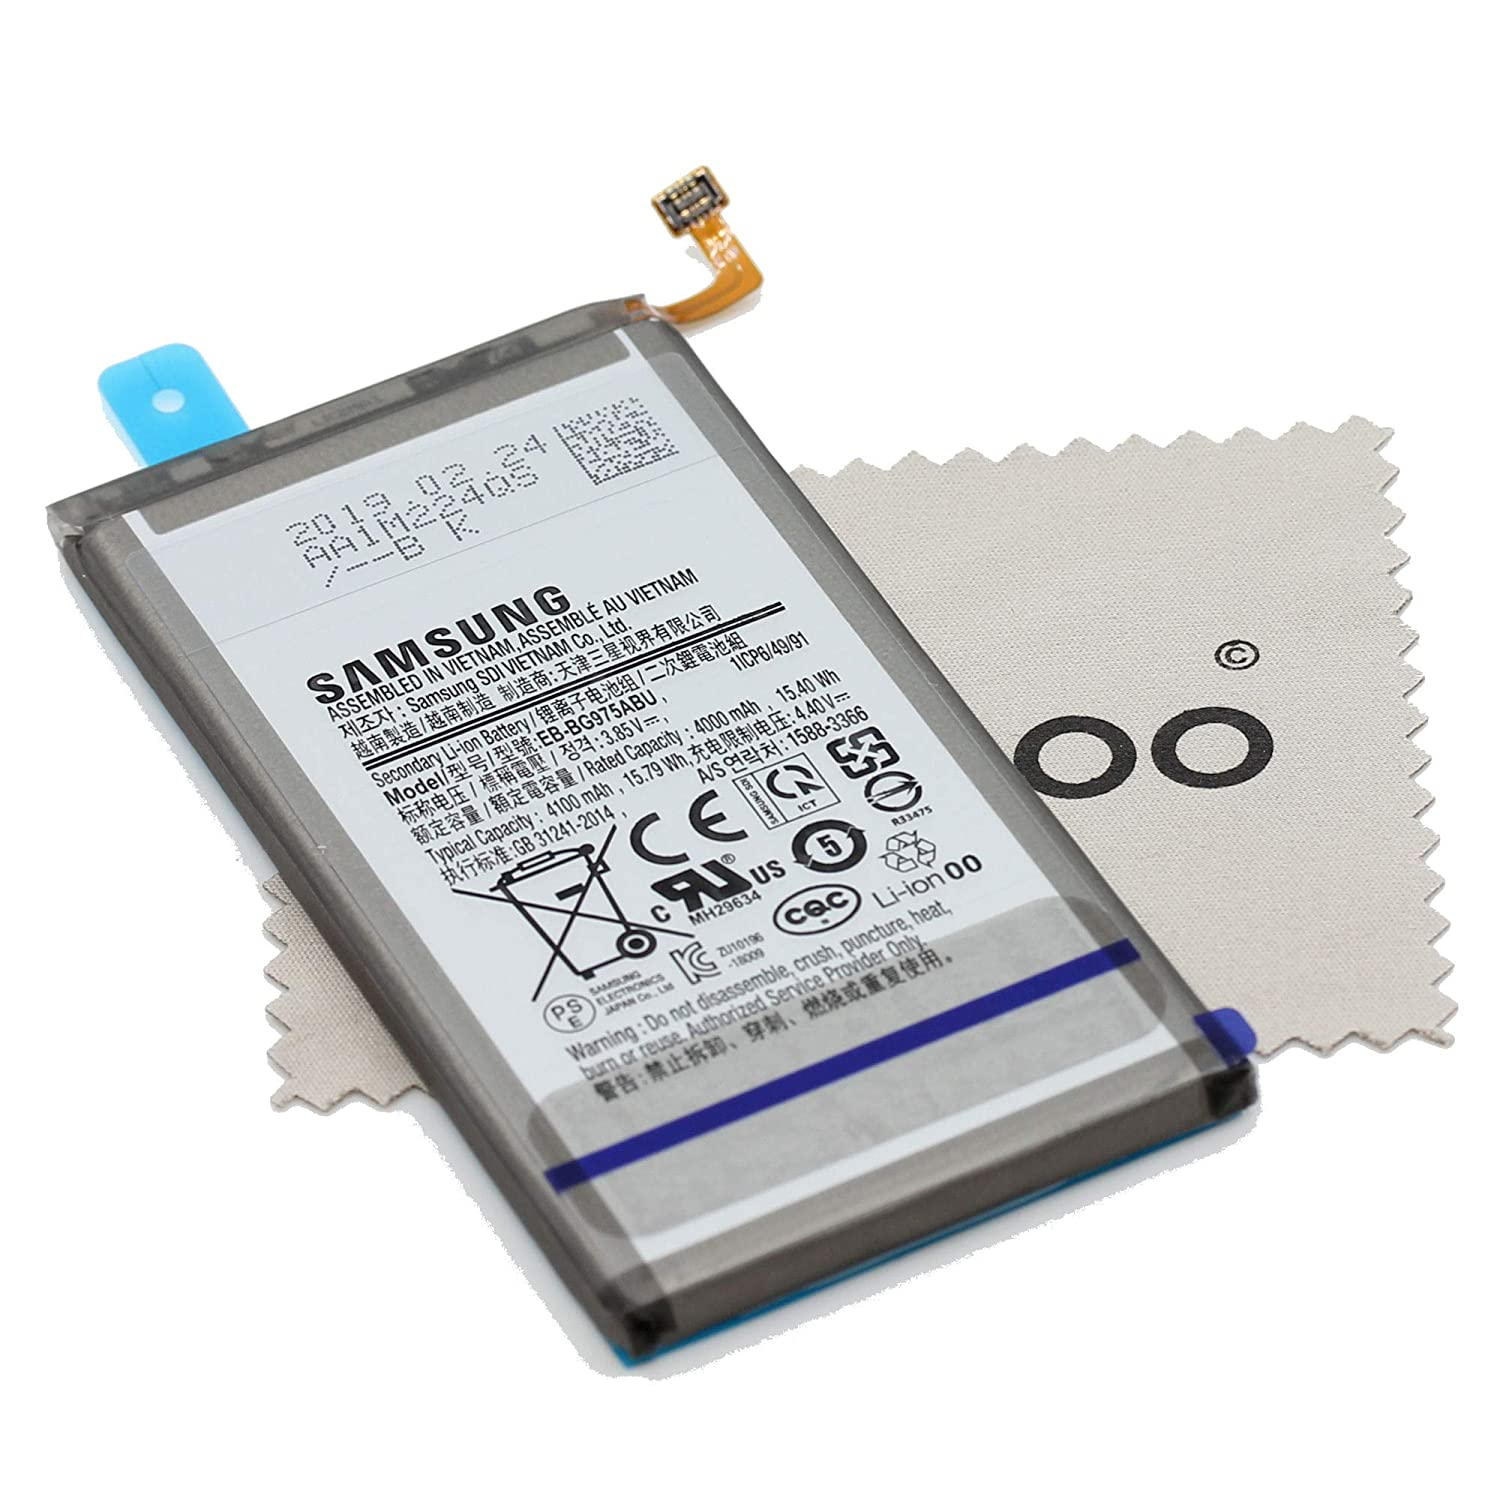 G975F S10+ with Mungoo Screen Cleaning Cloth Battery for Samsung Original EB-BG975ABU for Samsung Galaxy S10 Plus